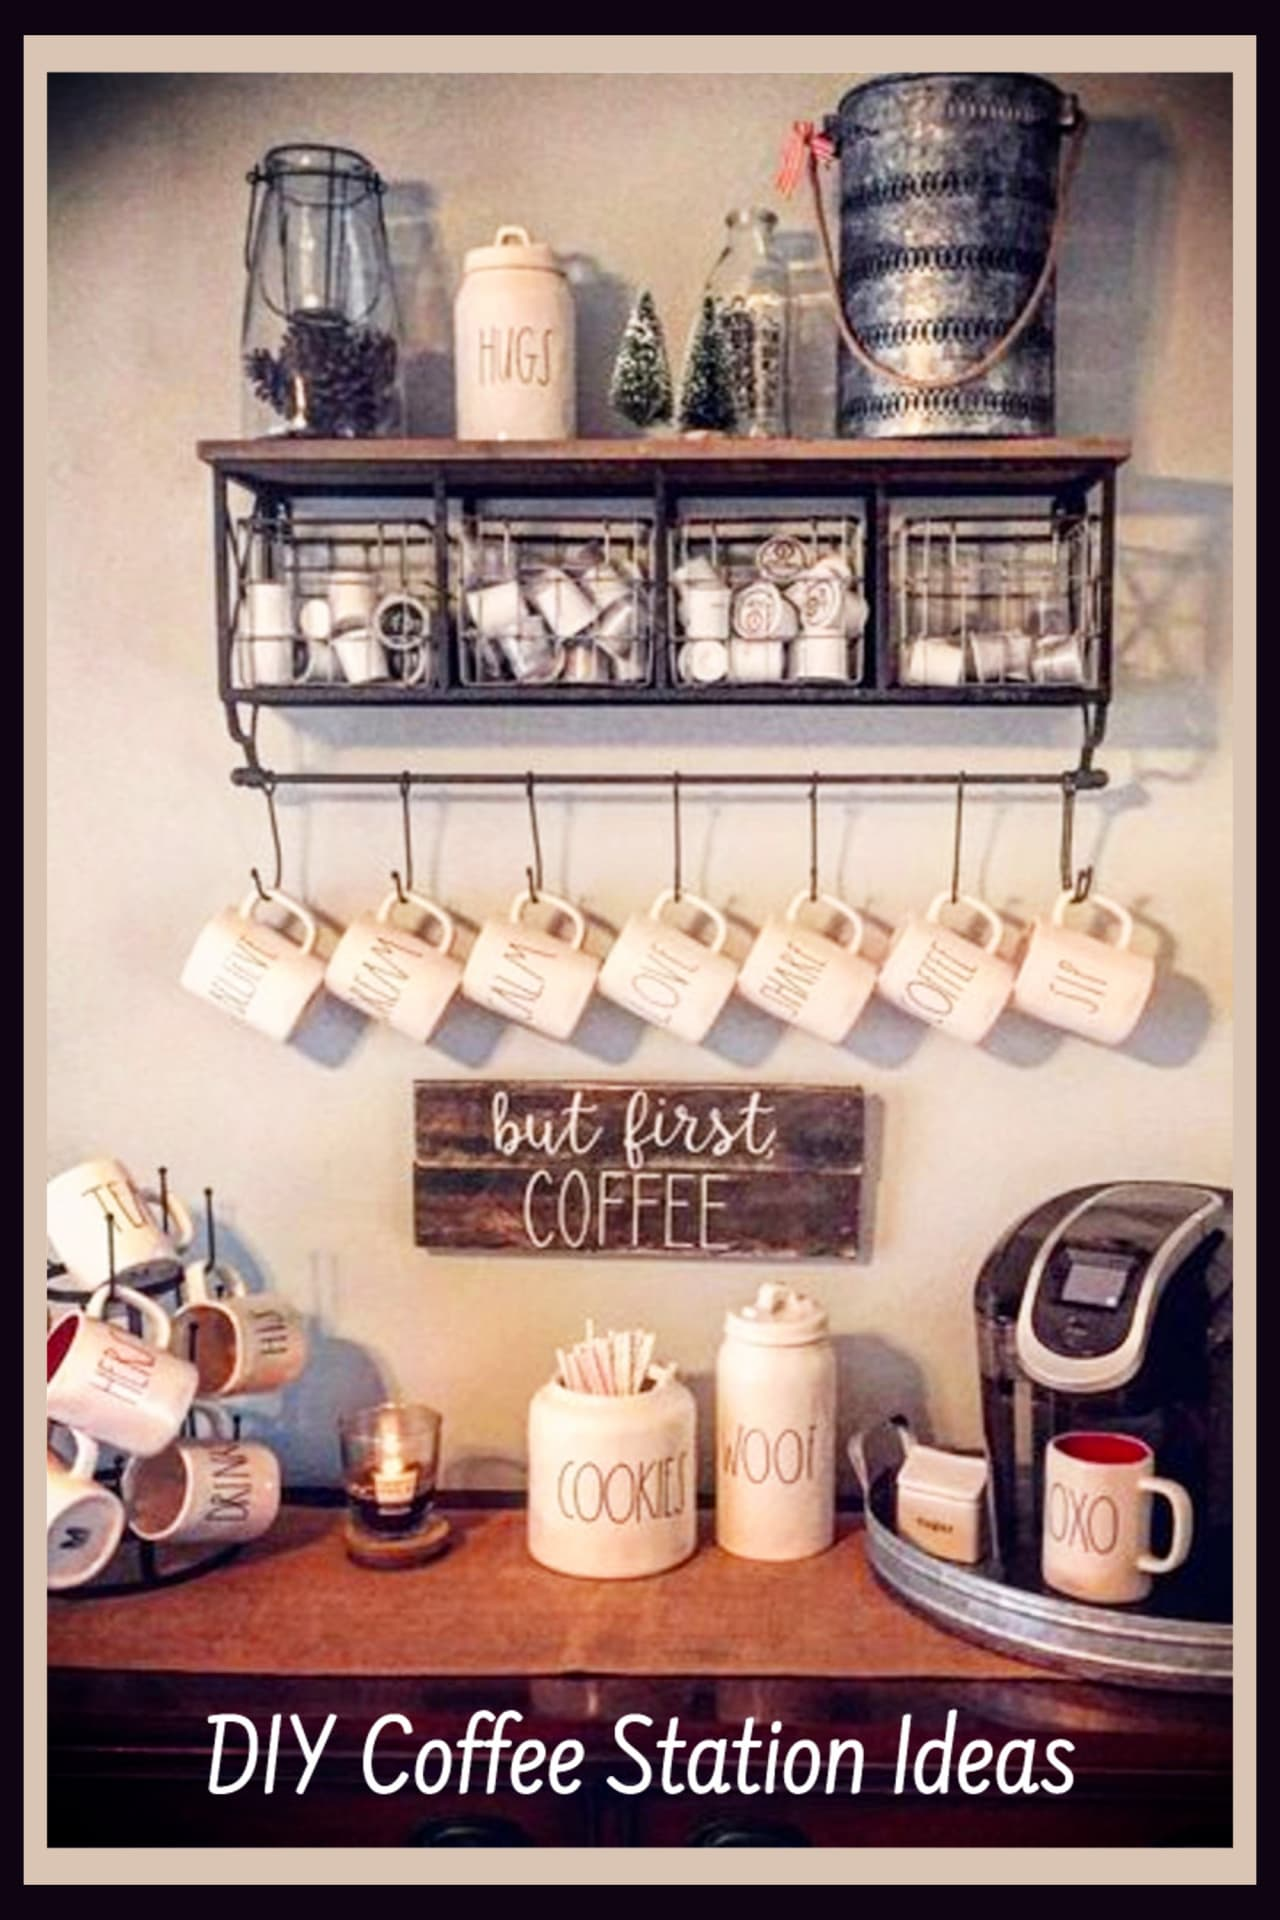 DIY Coffee Station Ideas - Home Coffee Bars Ideas & Pictures on coffee kitchen curtains, coffee foam designs, coffee bar for your kitchen, coffee house decor ideas, coffee bar or kitchen carts, coffee shop counter design, coffee bar into kitchen, 2 stoves in kitchen, coffee shop kitchen, coffee birthday ideas, coffee house style decorating, kitchen ideas for small kitchen, coffee kitchen decor, coffee cup, coffee bar kitchen design, coffee colors for kitchens, coffee counter design ideas, coffee station for kitchen cupboards,